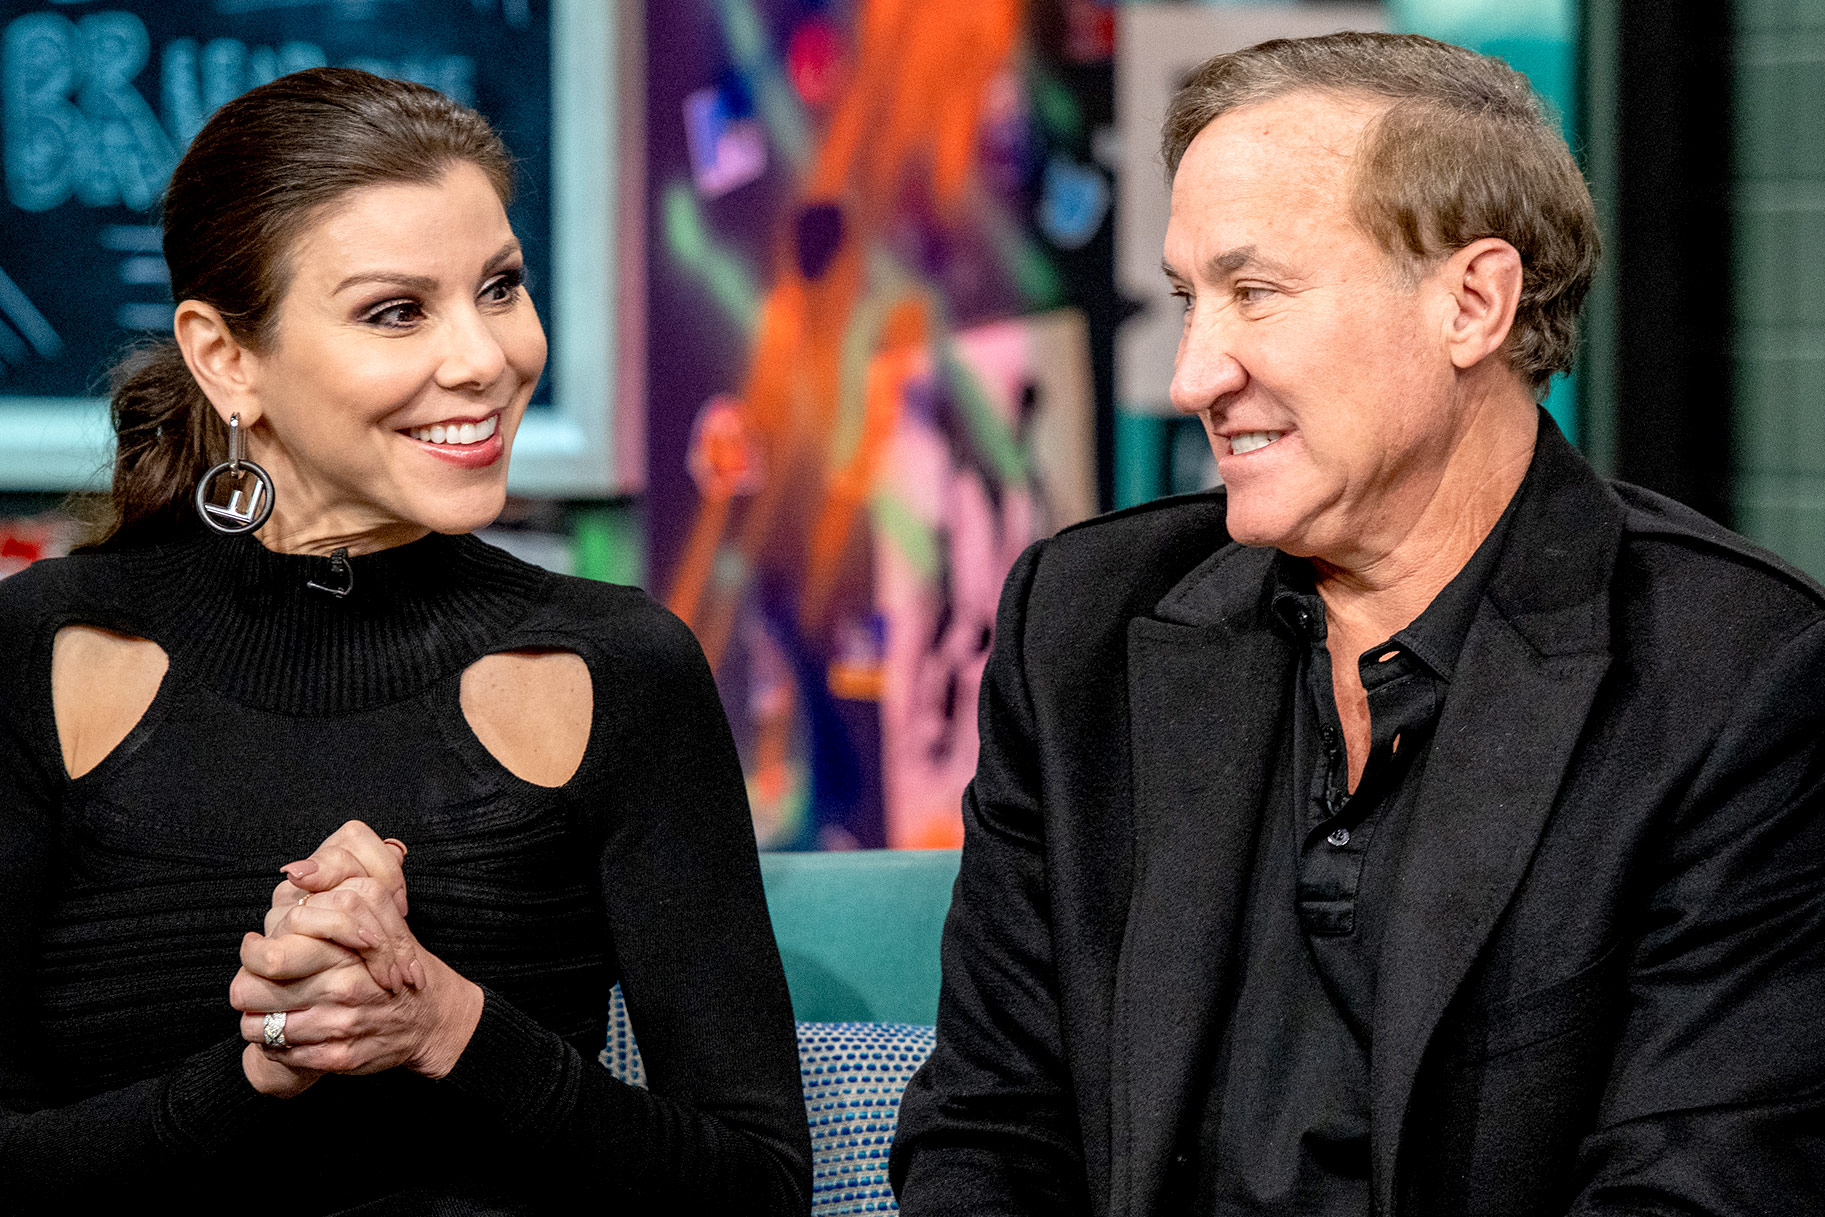 Heather Dubrow/Insagram